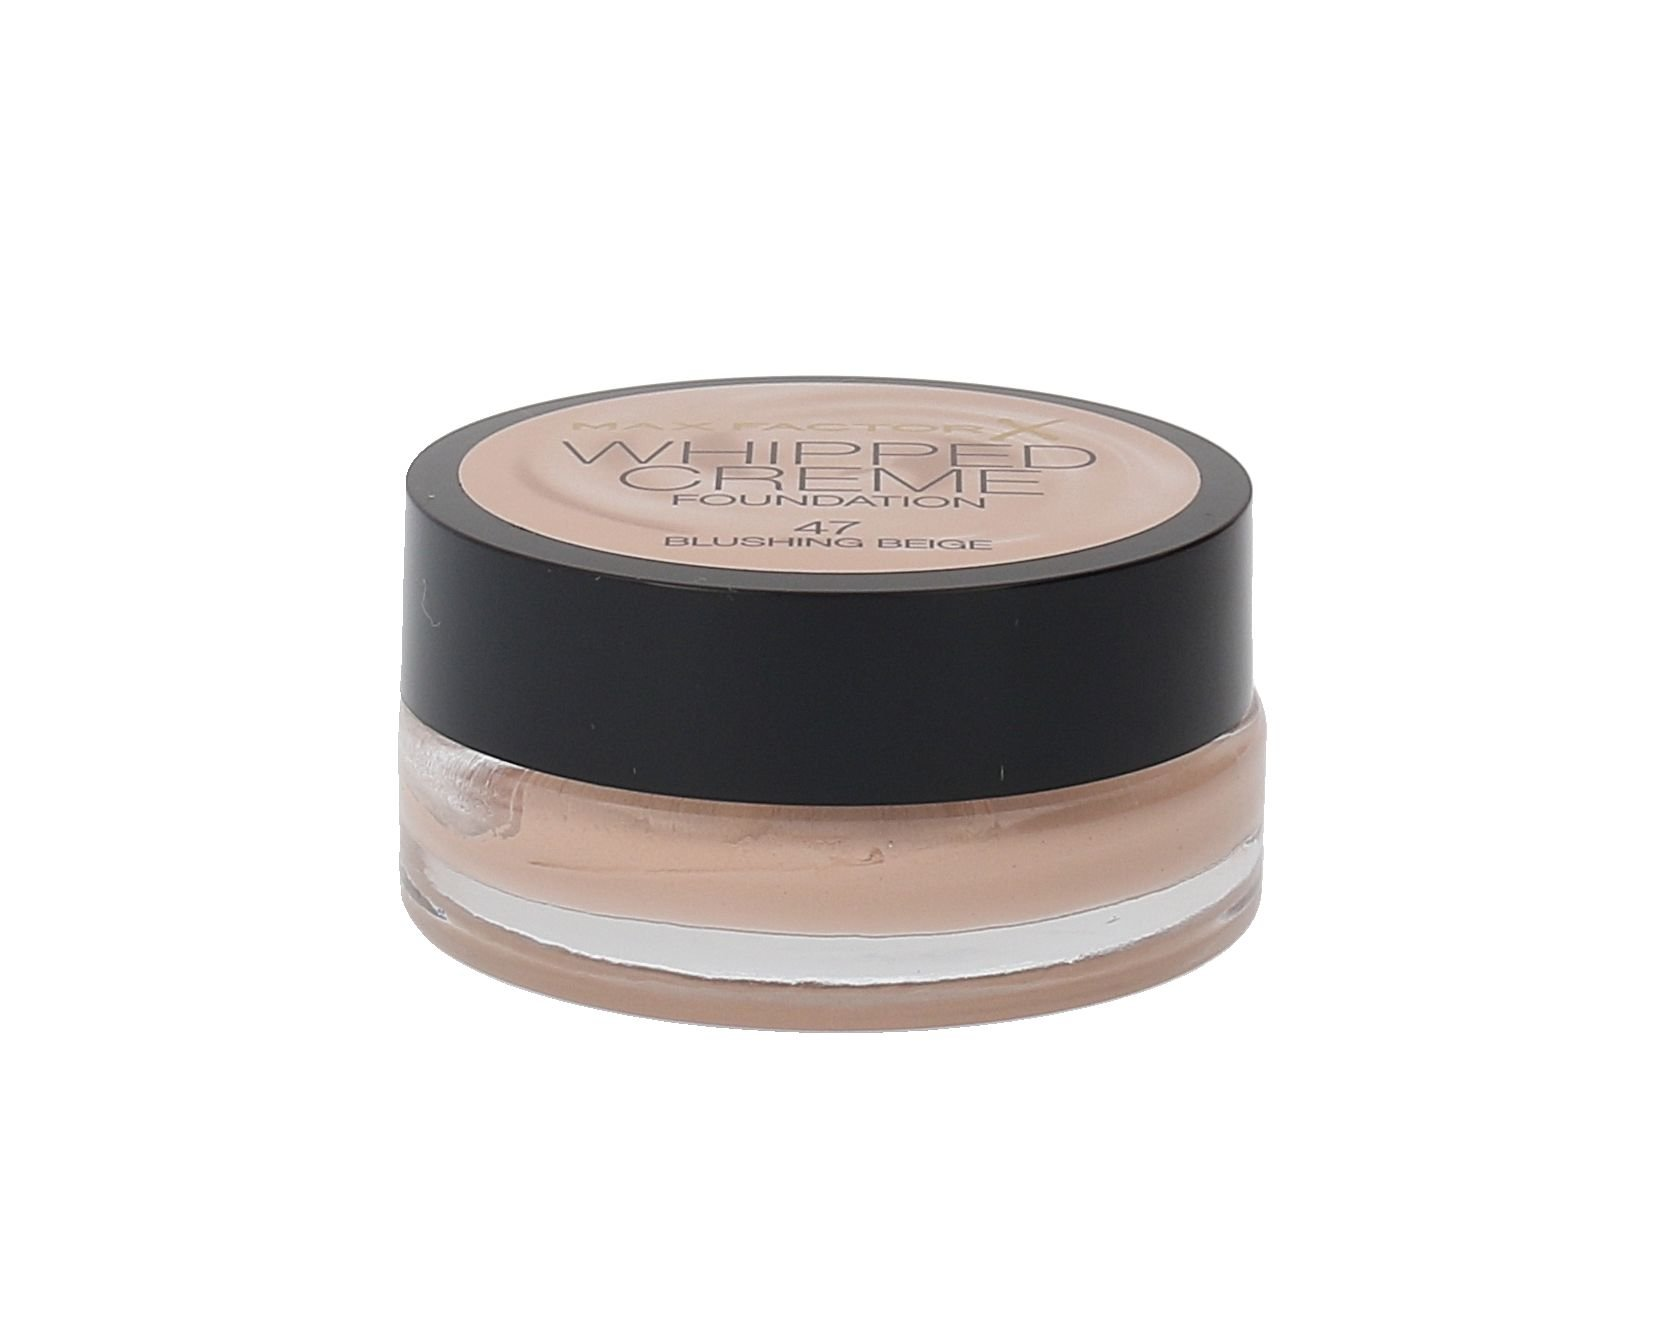 Max Factor Whipped Creme Cosmetic 18ml 47 Blushing Beige